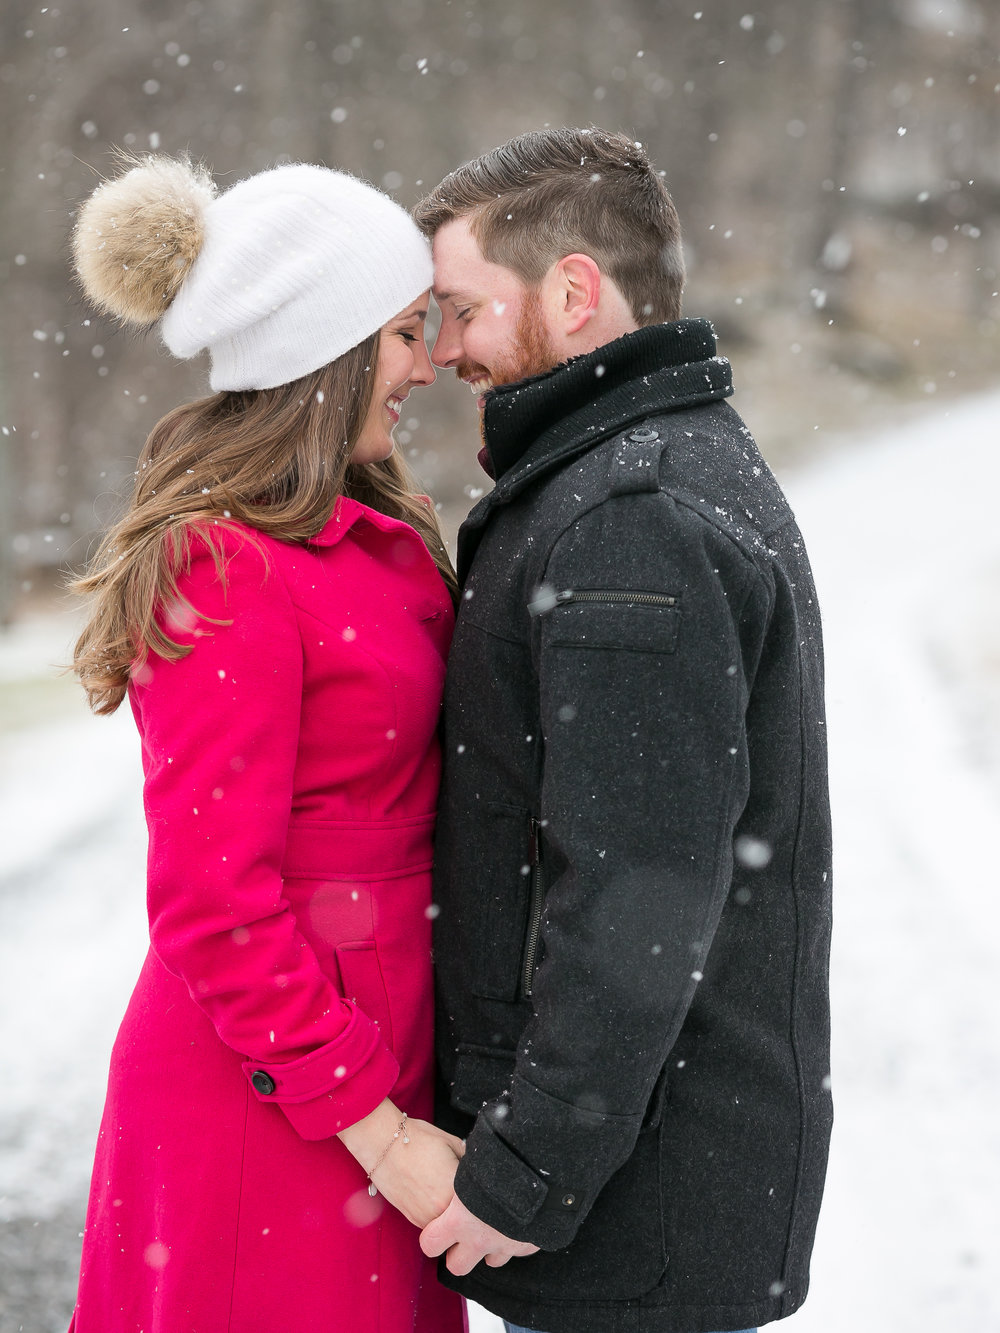 Sara-Chris-Winter-Engagement-Session-32.jpg